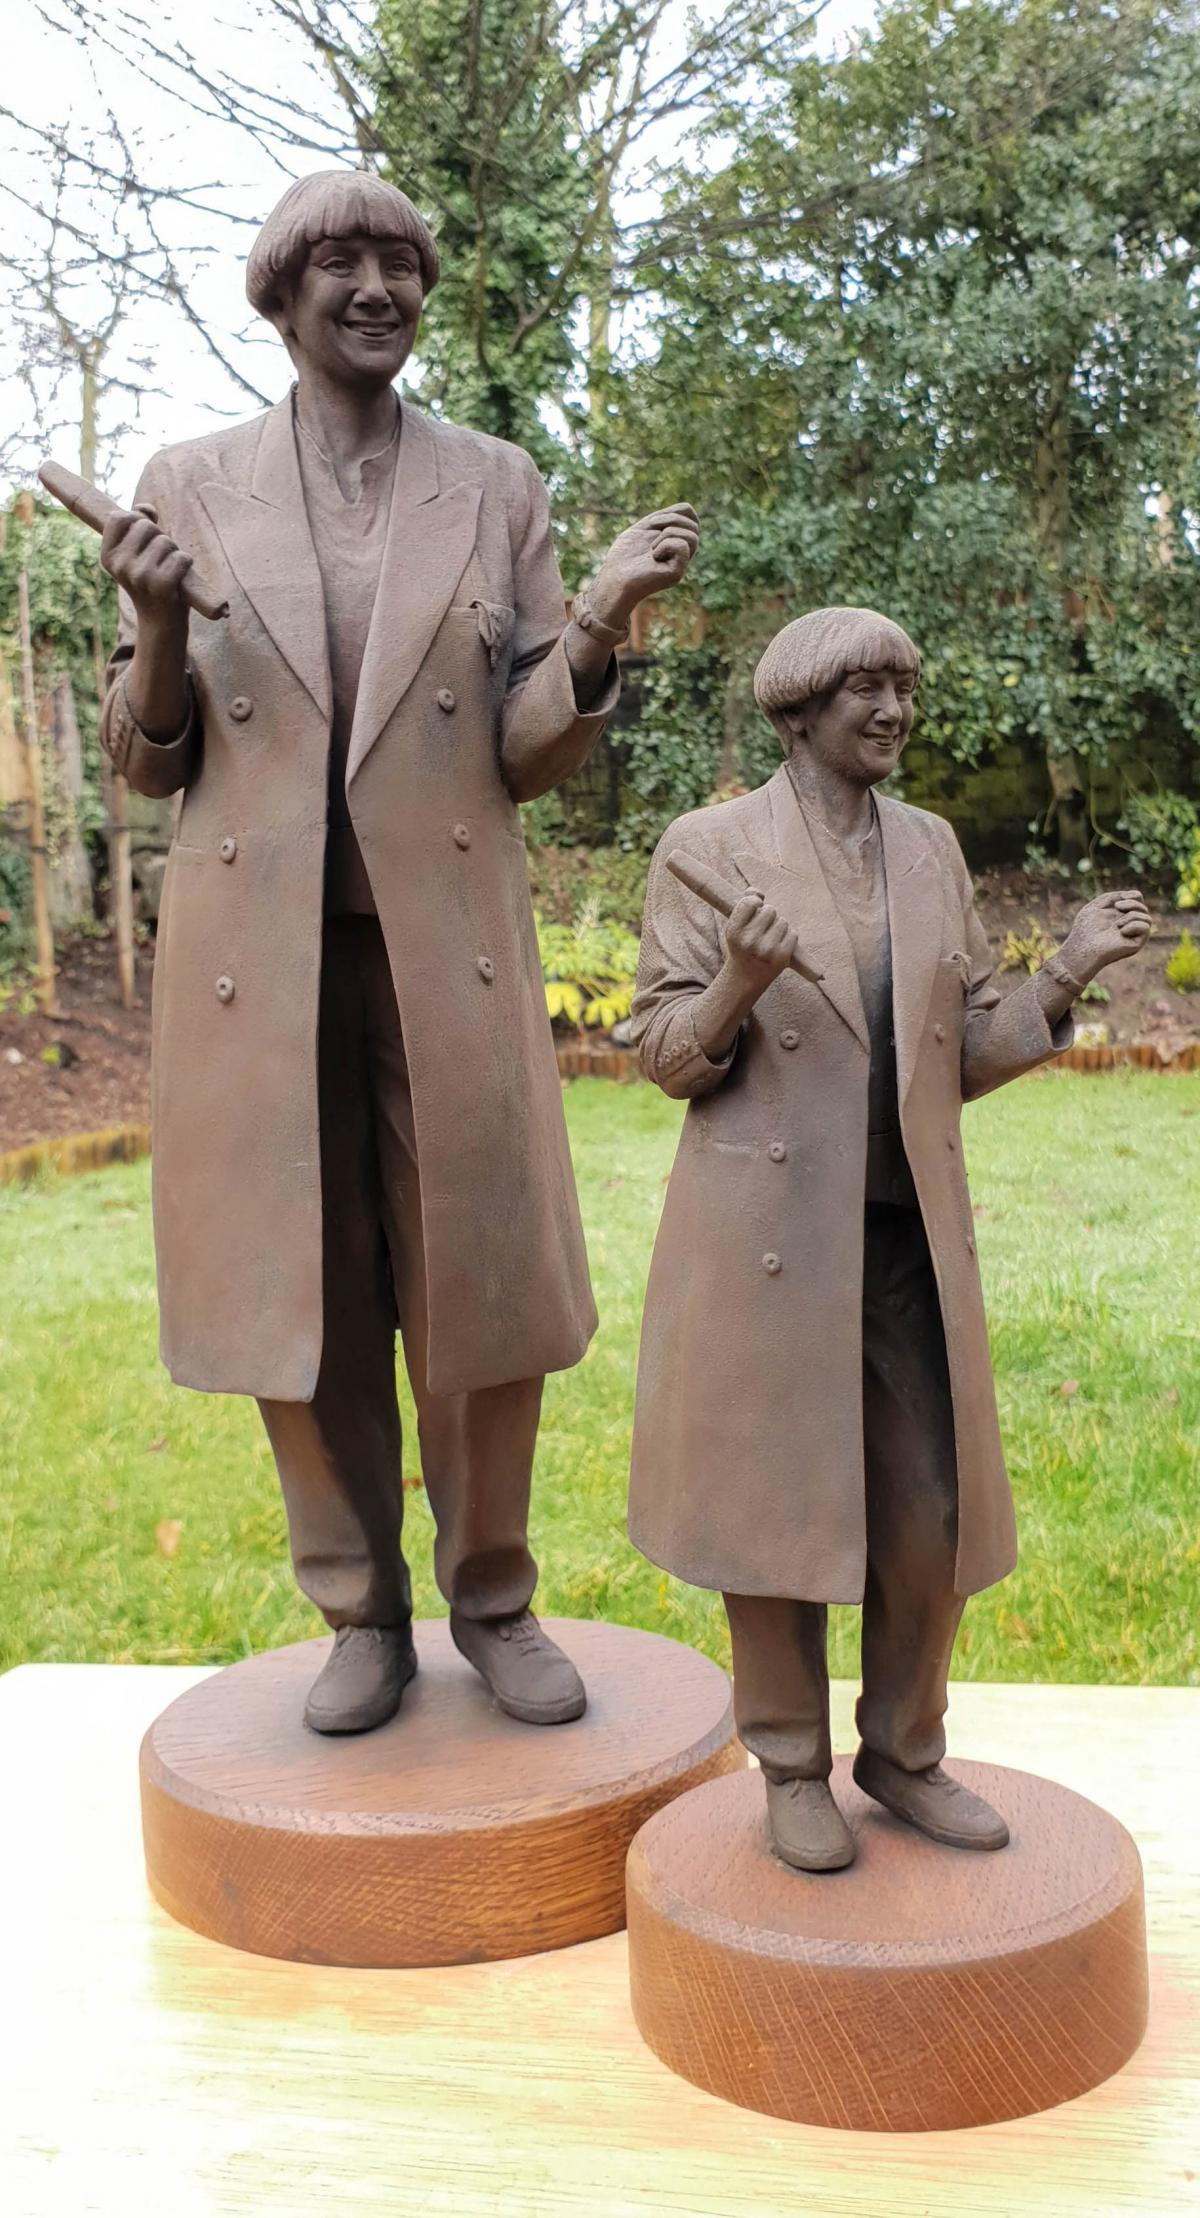 20158413 1.jpg.gallery Victoria Wood Memorial Statue Faces Backlash Over Claims It Looks 'More Like Peter Beardsley'